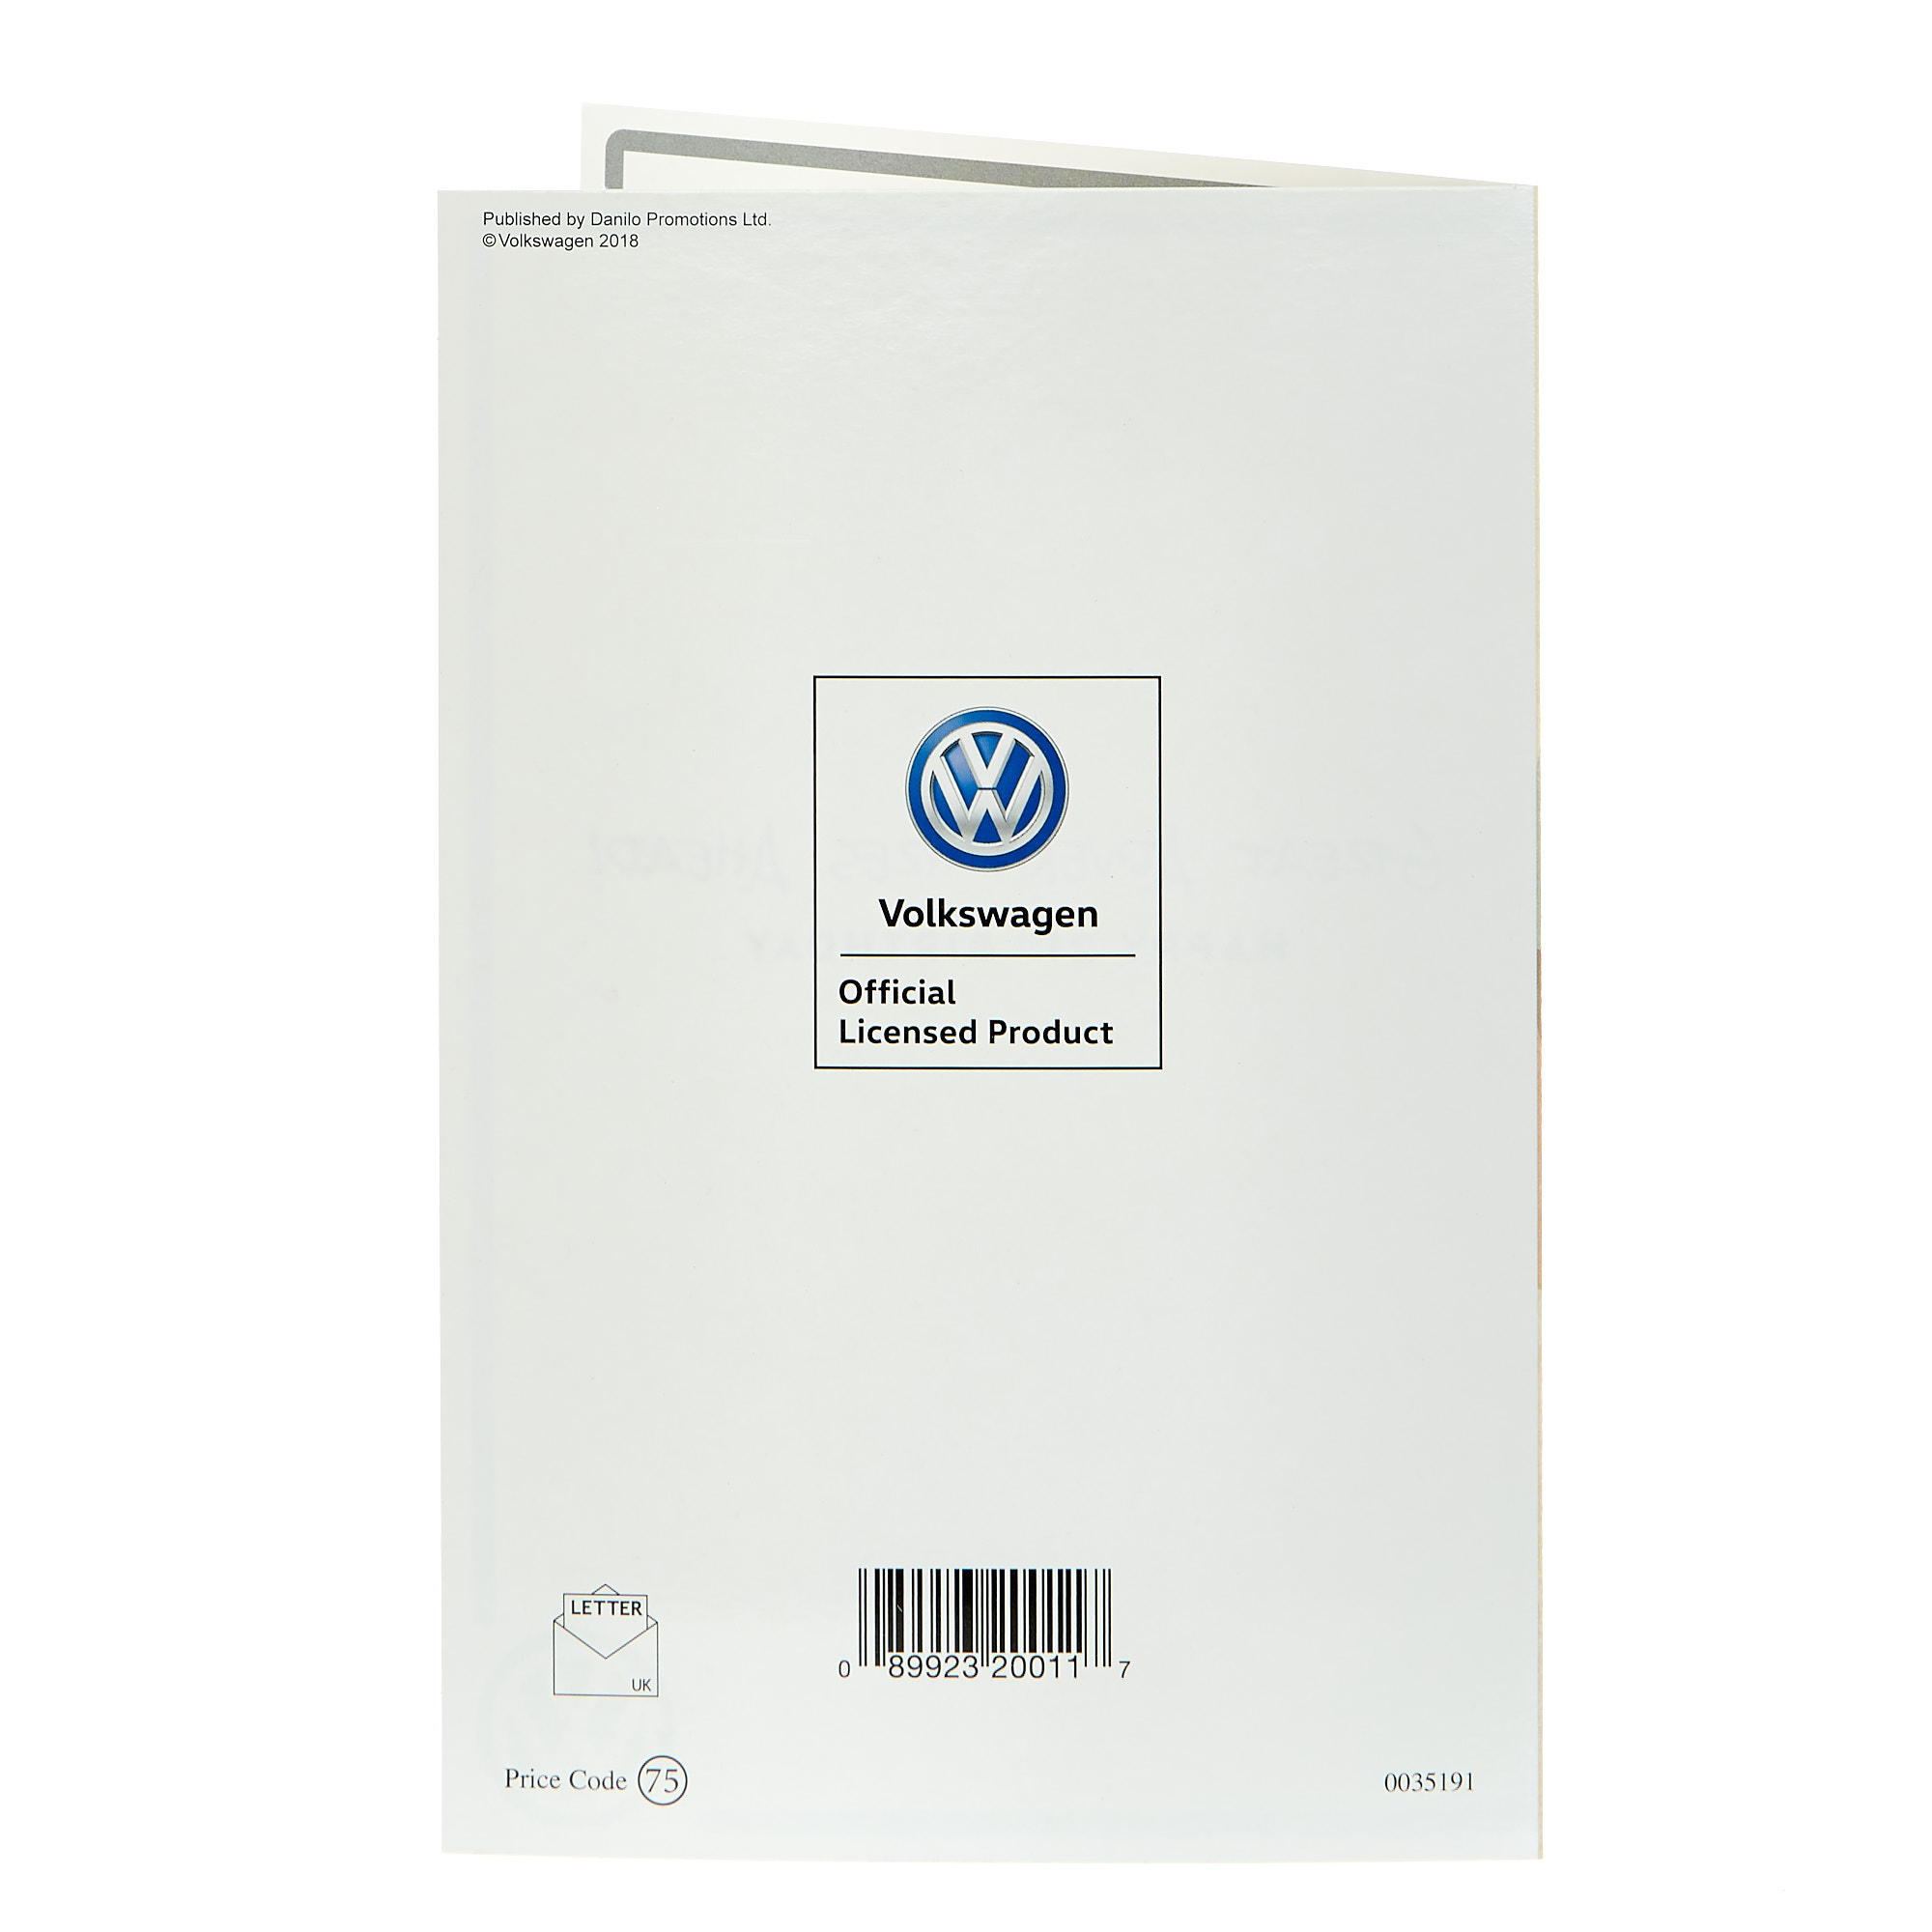 Volkswagen 21st Birthday Card